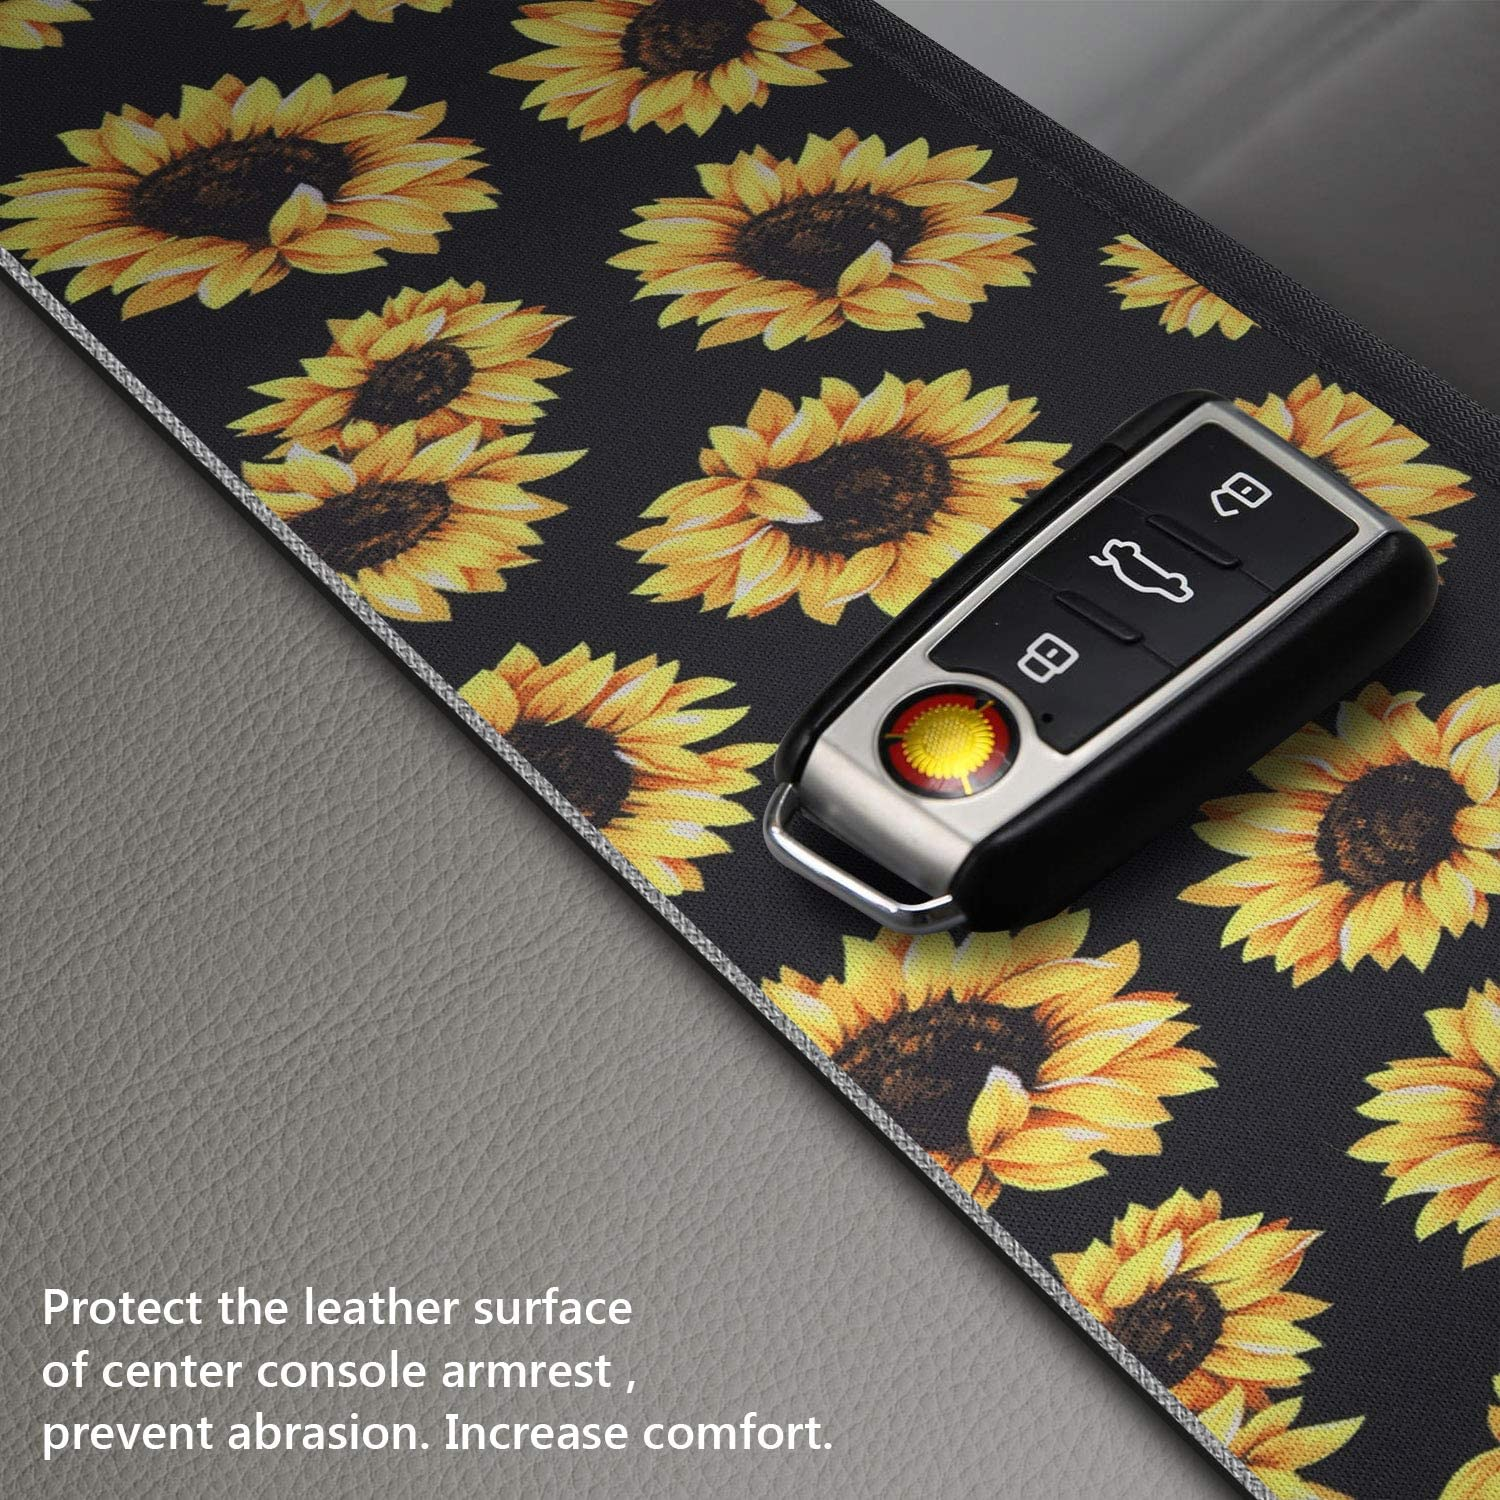 YR Vehicle Center Console Armrest Cover Pad Aqua Flower Stylish Pattern Design Car Armrest Cover Universal Fit Soft Comfort Center Console Armrest Cushion for Car